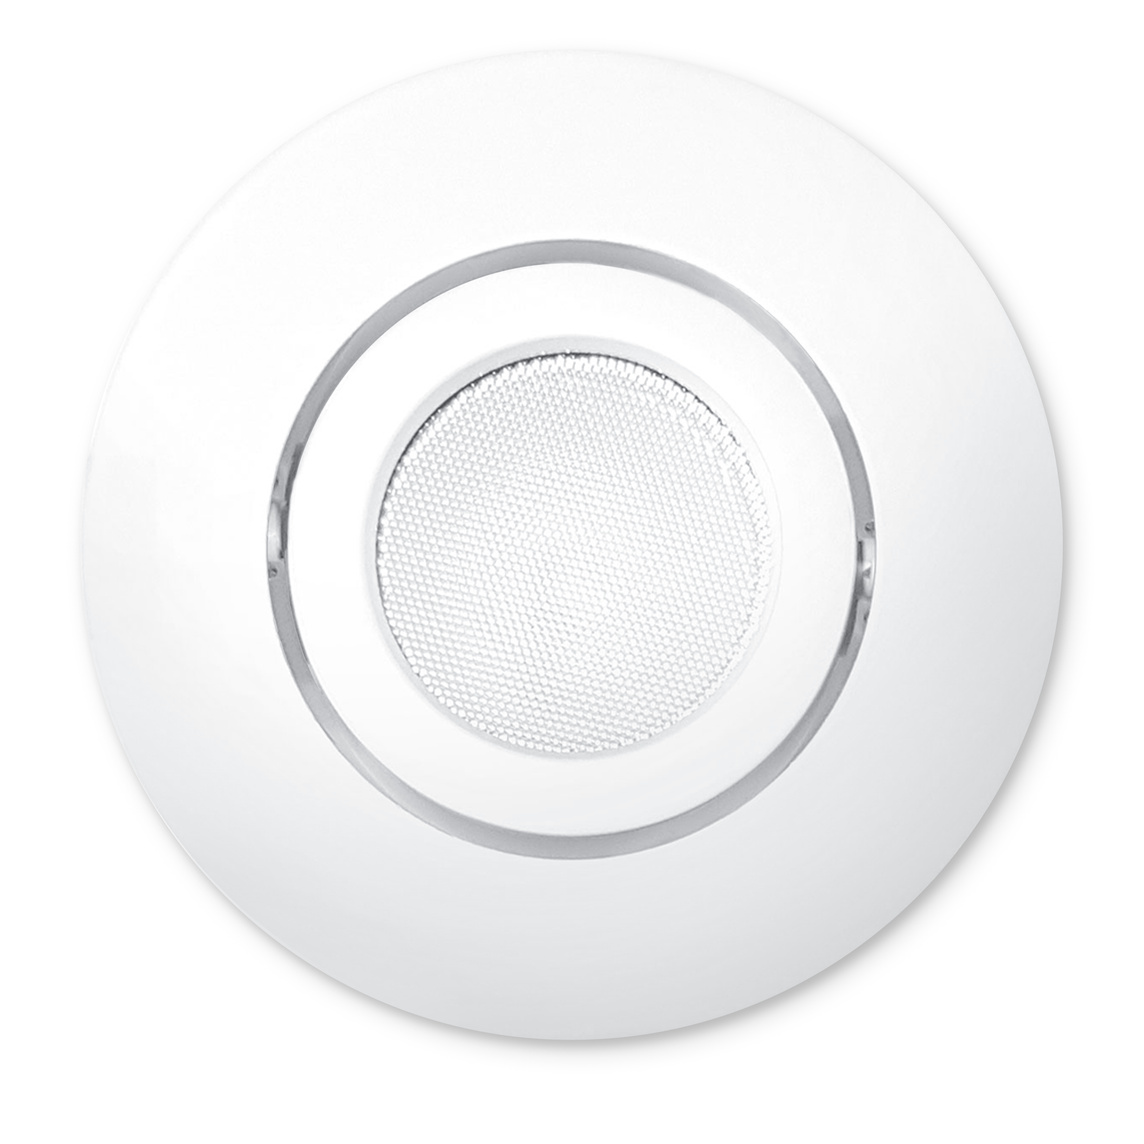 Faretti Led Con Trasformatore Incorporato faretto led smart multicolore lifx da 100 mm con wi-fi